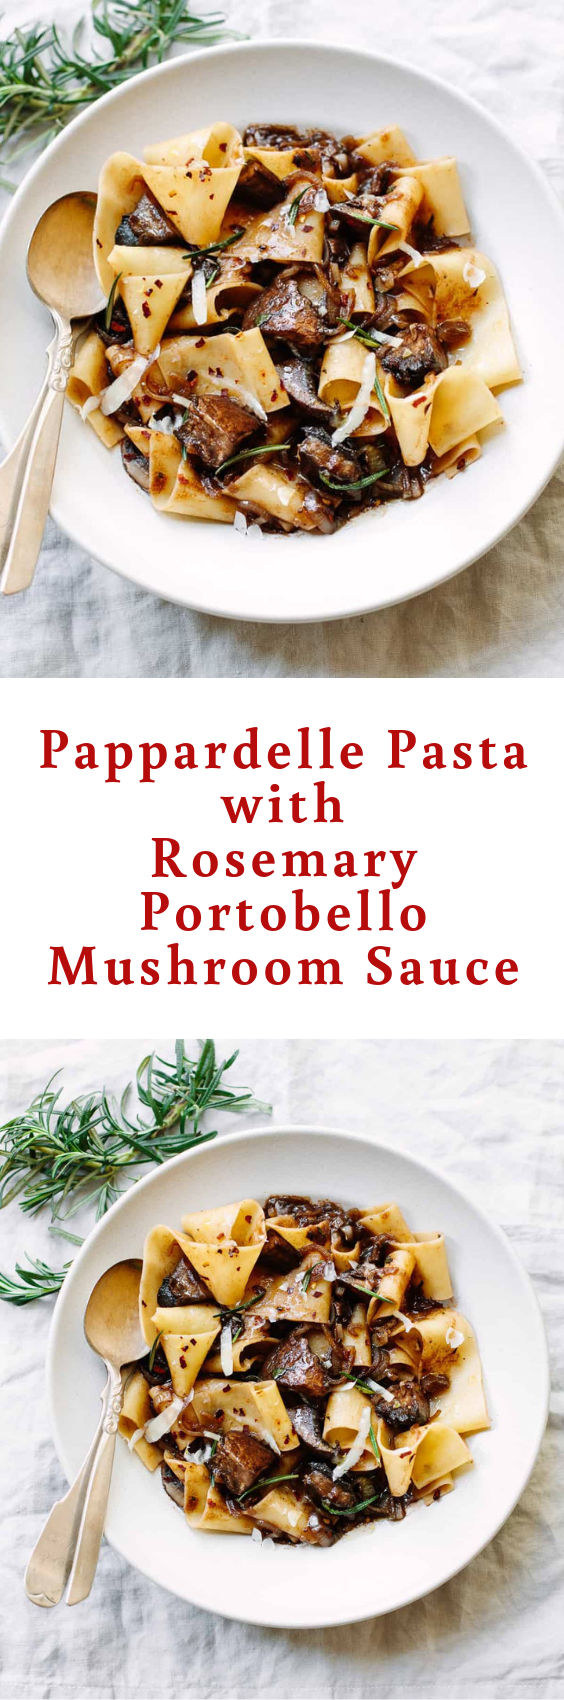 Pappardelle Pasta With Rosemary Portobello Mushroom Sauce Pappardelle Pasta Vegetarian Pasta Recipes Easy Pappardelle